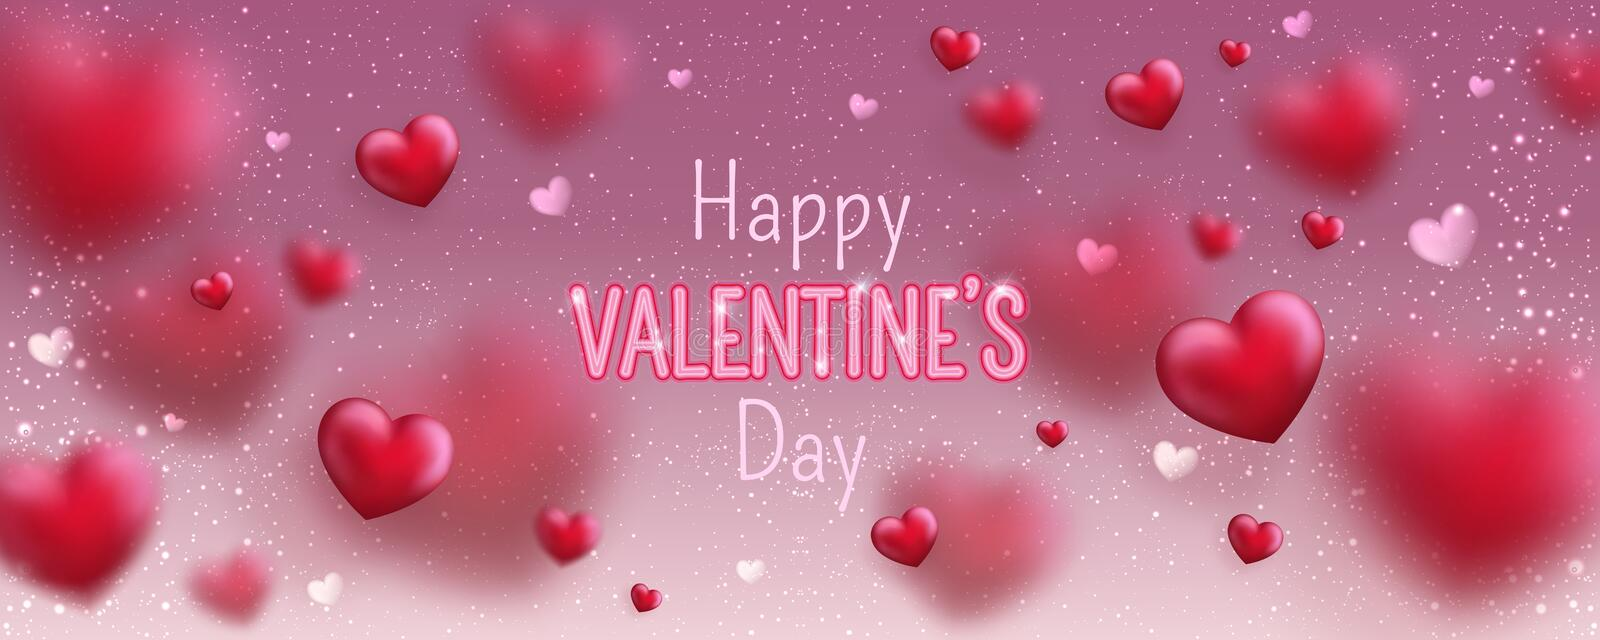 Glowing text for Happy Valentines Day greeting card. Cute love banner for 14 February. Holiday background with 3d hearts, light, stars on pink. Vector vector illustration